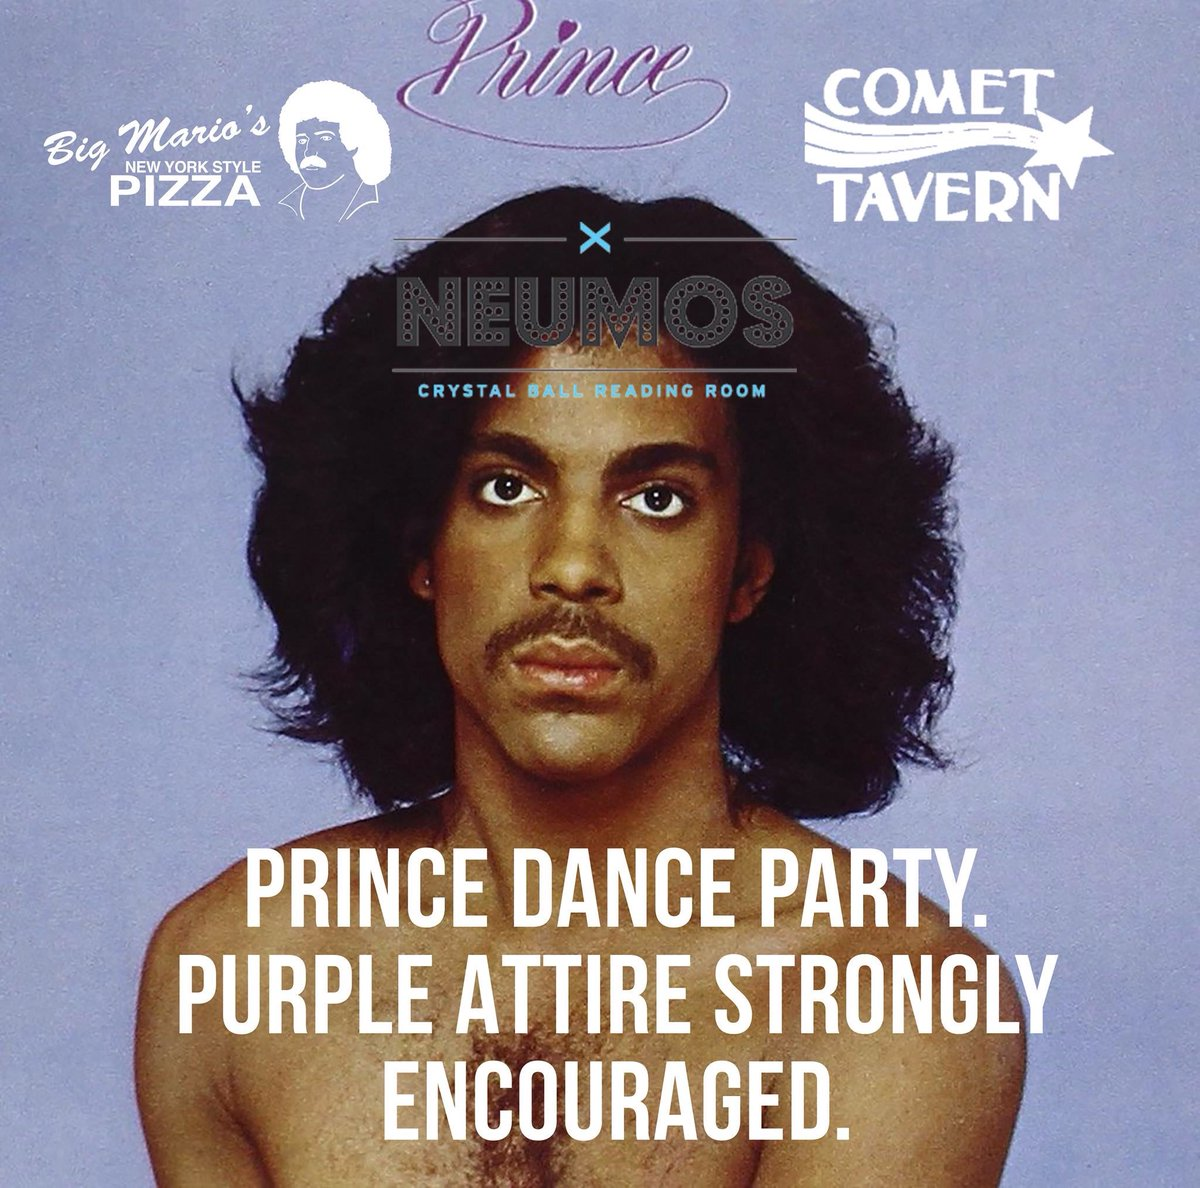 Prince street party tonight on Pike! Wear purple and get ready to get down. Music starts at 10pm! https://t.co/J2chvVfOs9